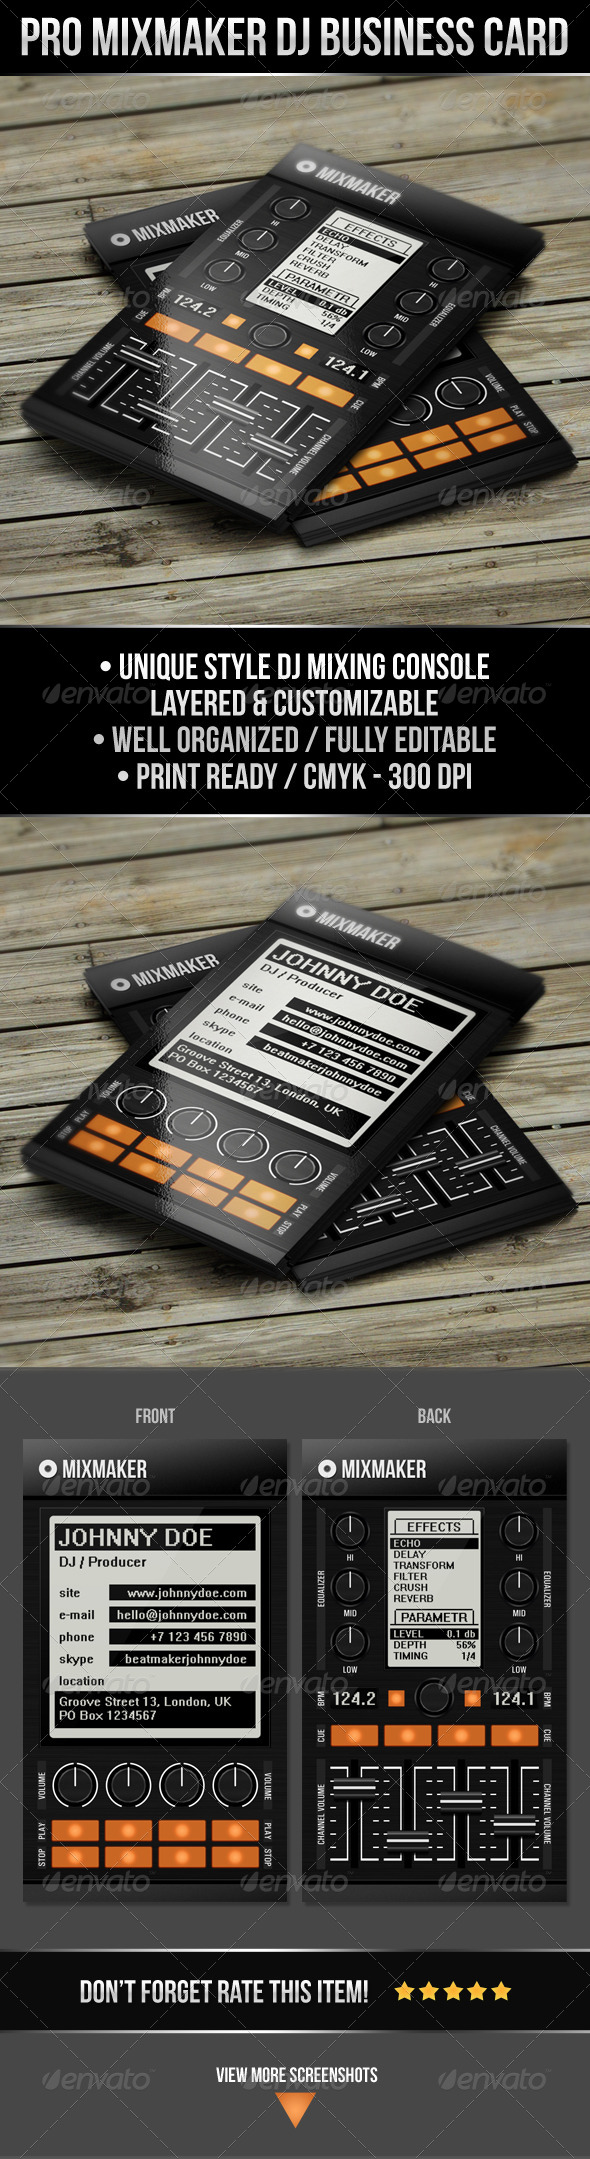 GraphicRiver Pro Mixmaker DJ Business Card 5105951